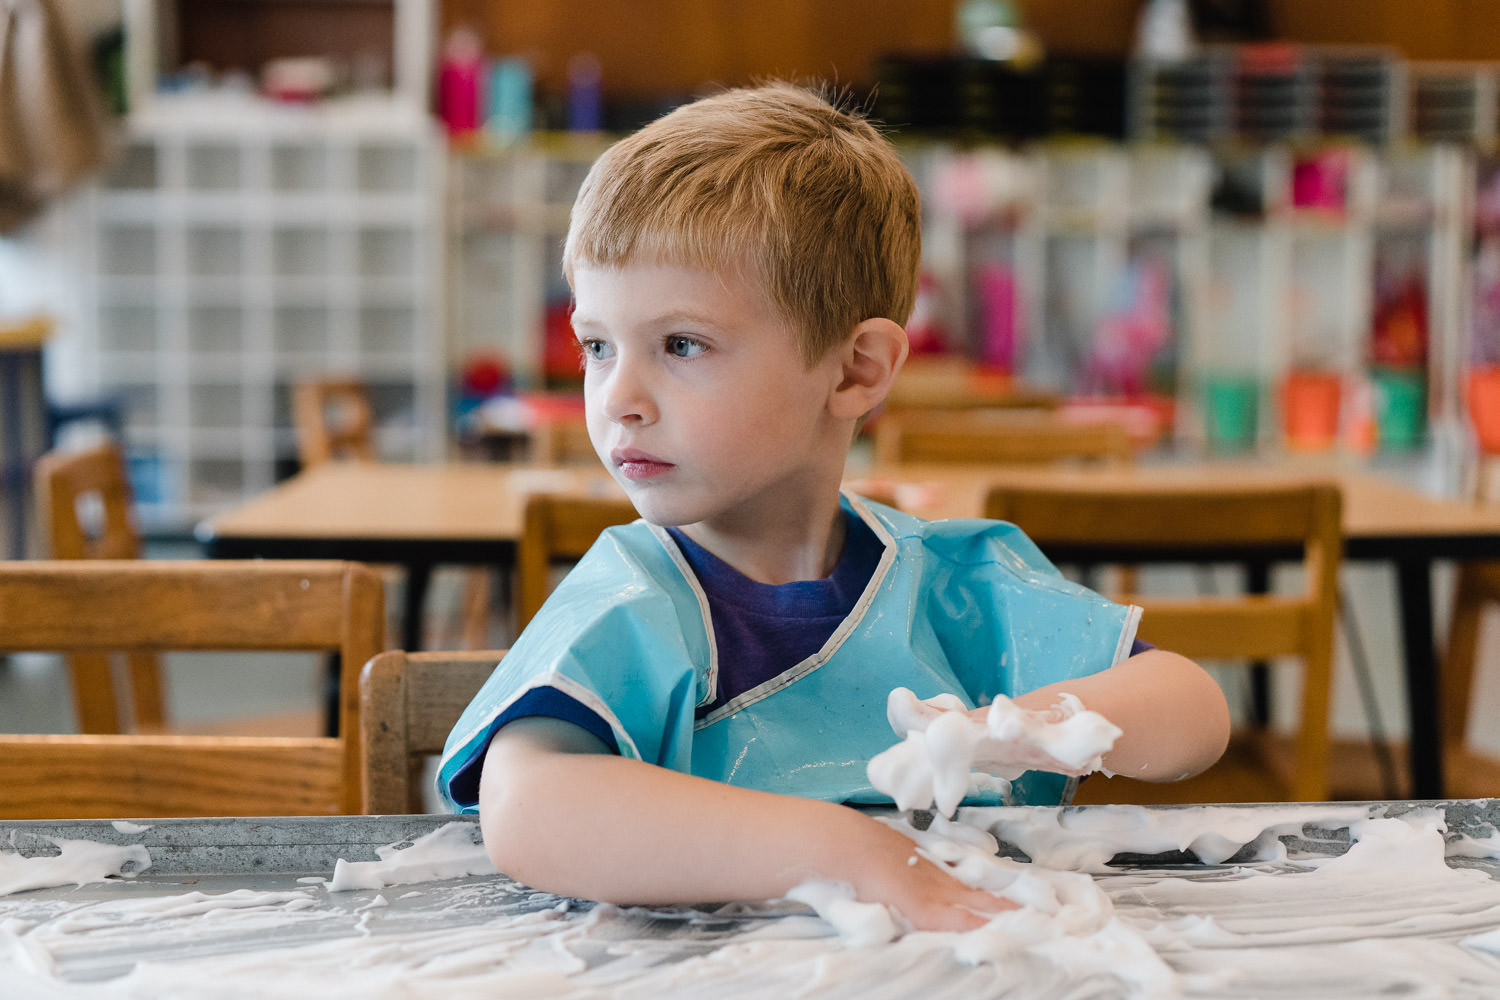 A little boy plays with shaving cream at preschool.